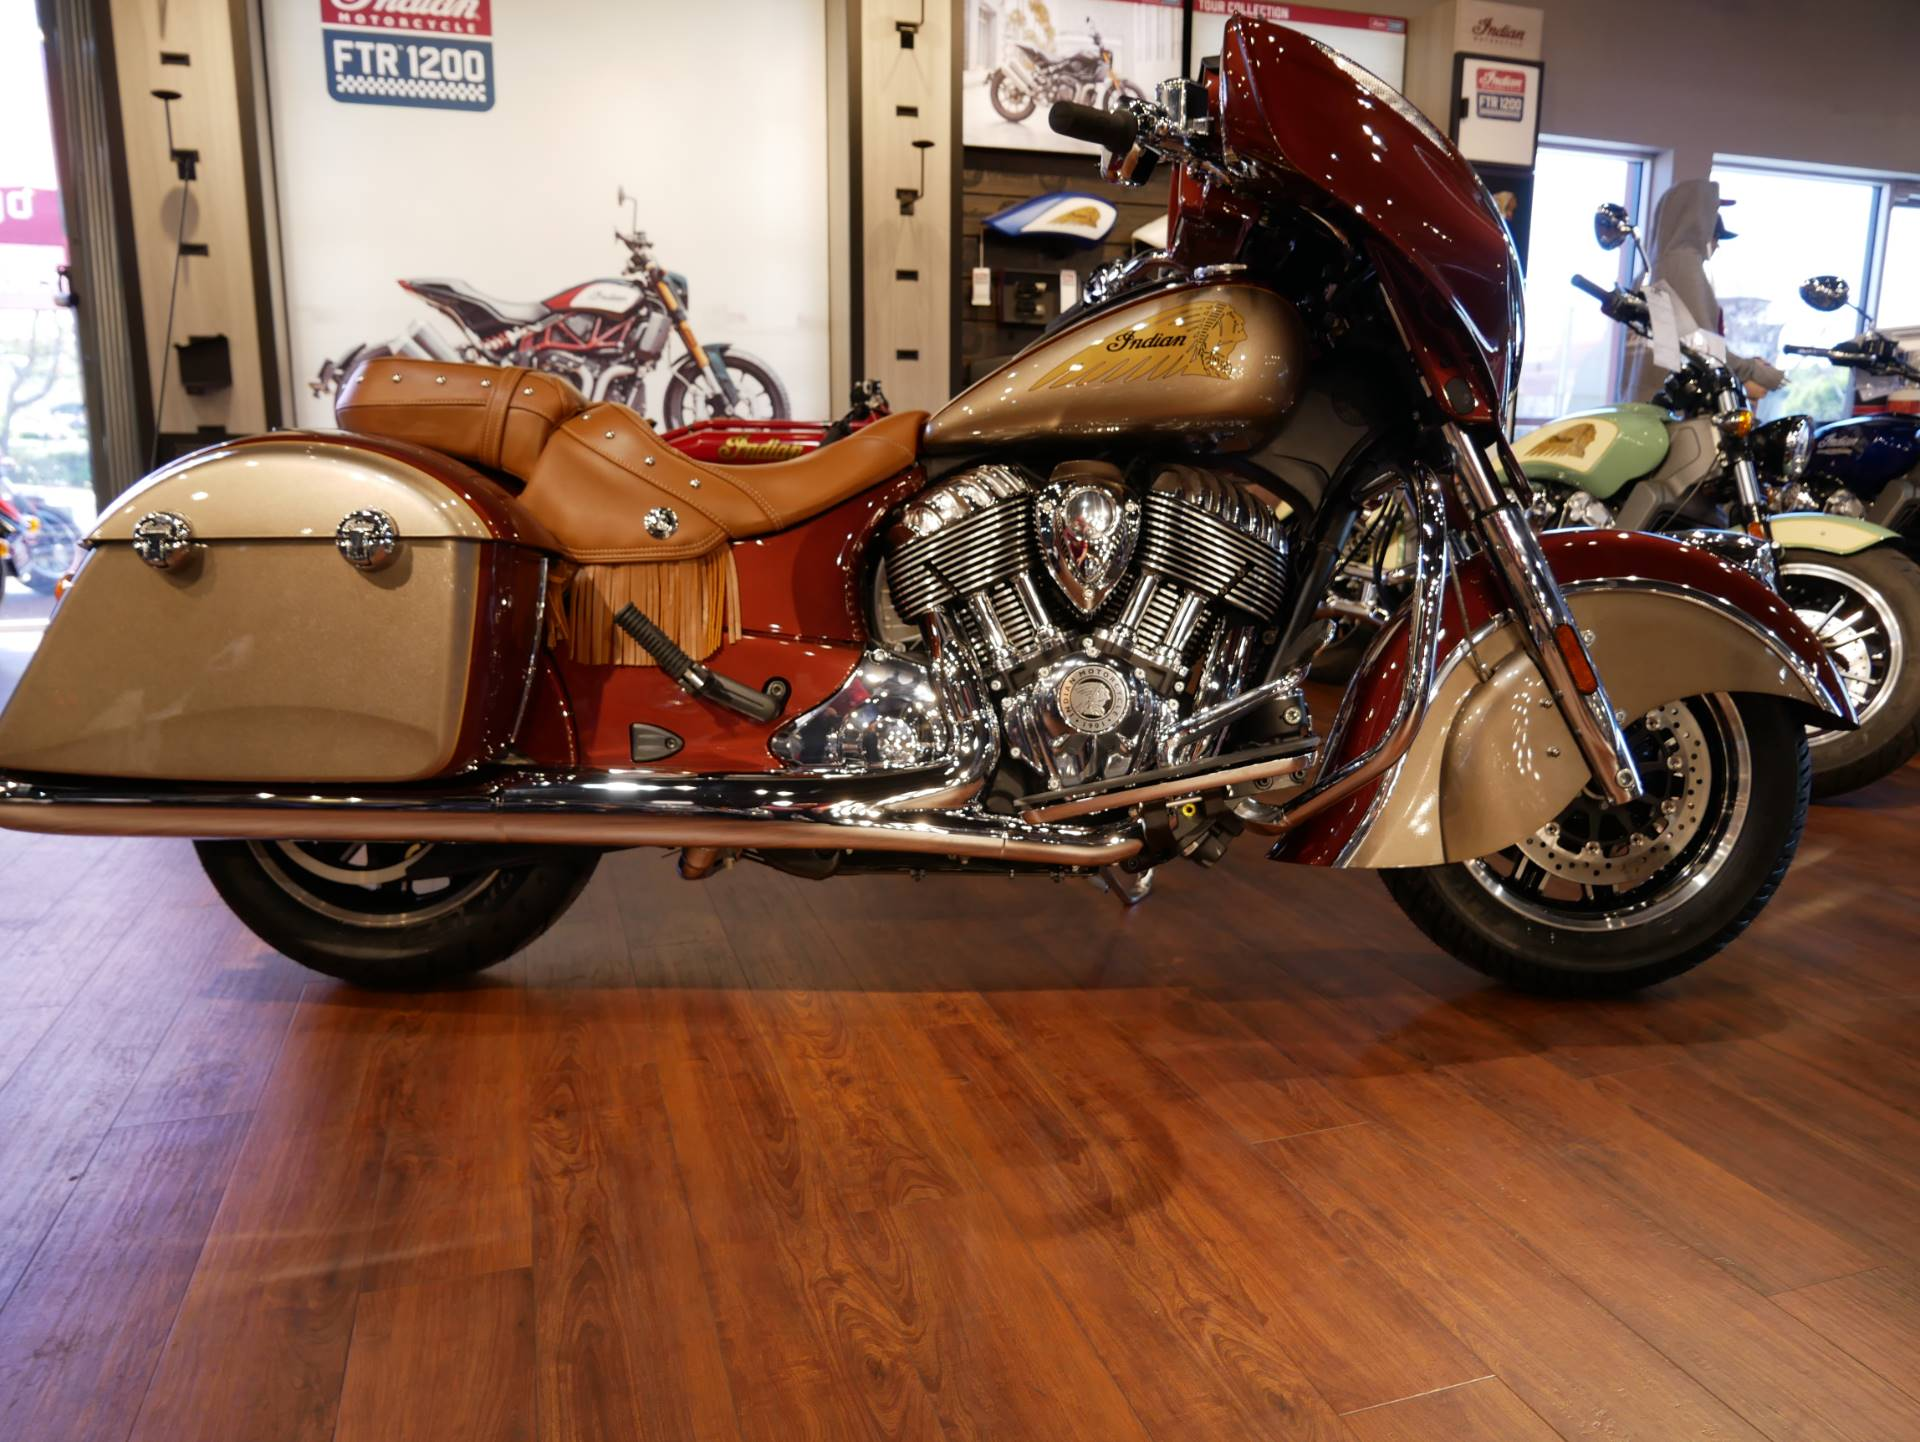 2019 Indian Chieftain® Classic Icon Series in San Diego, California - Photo 1